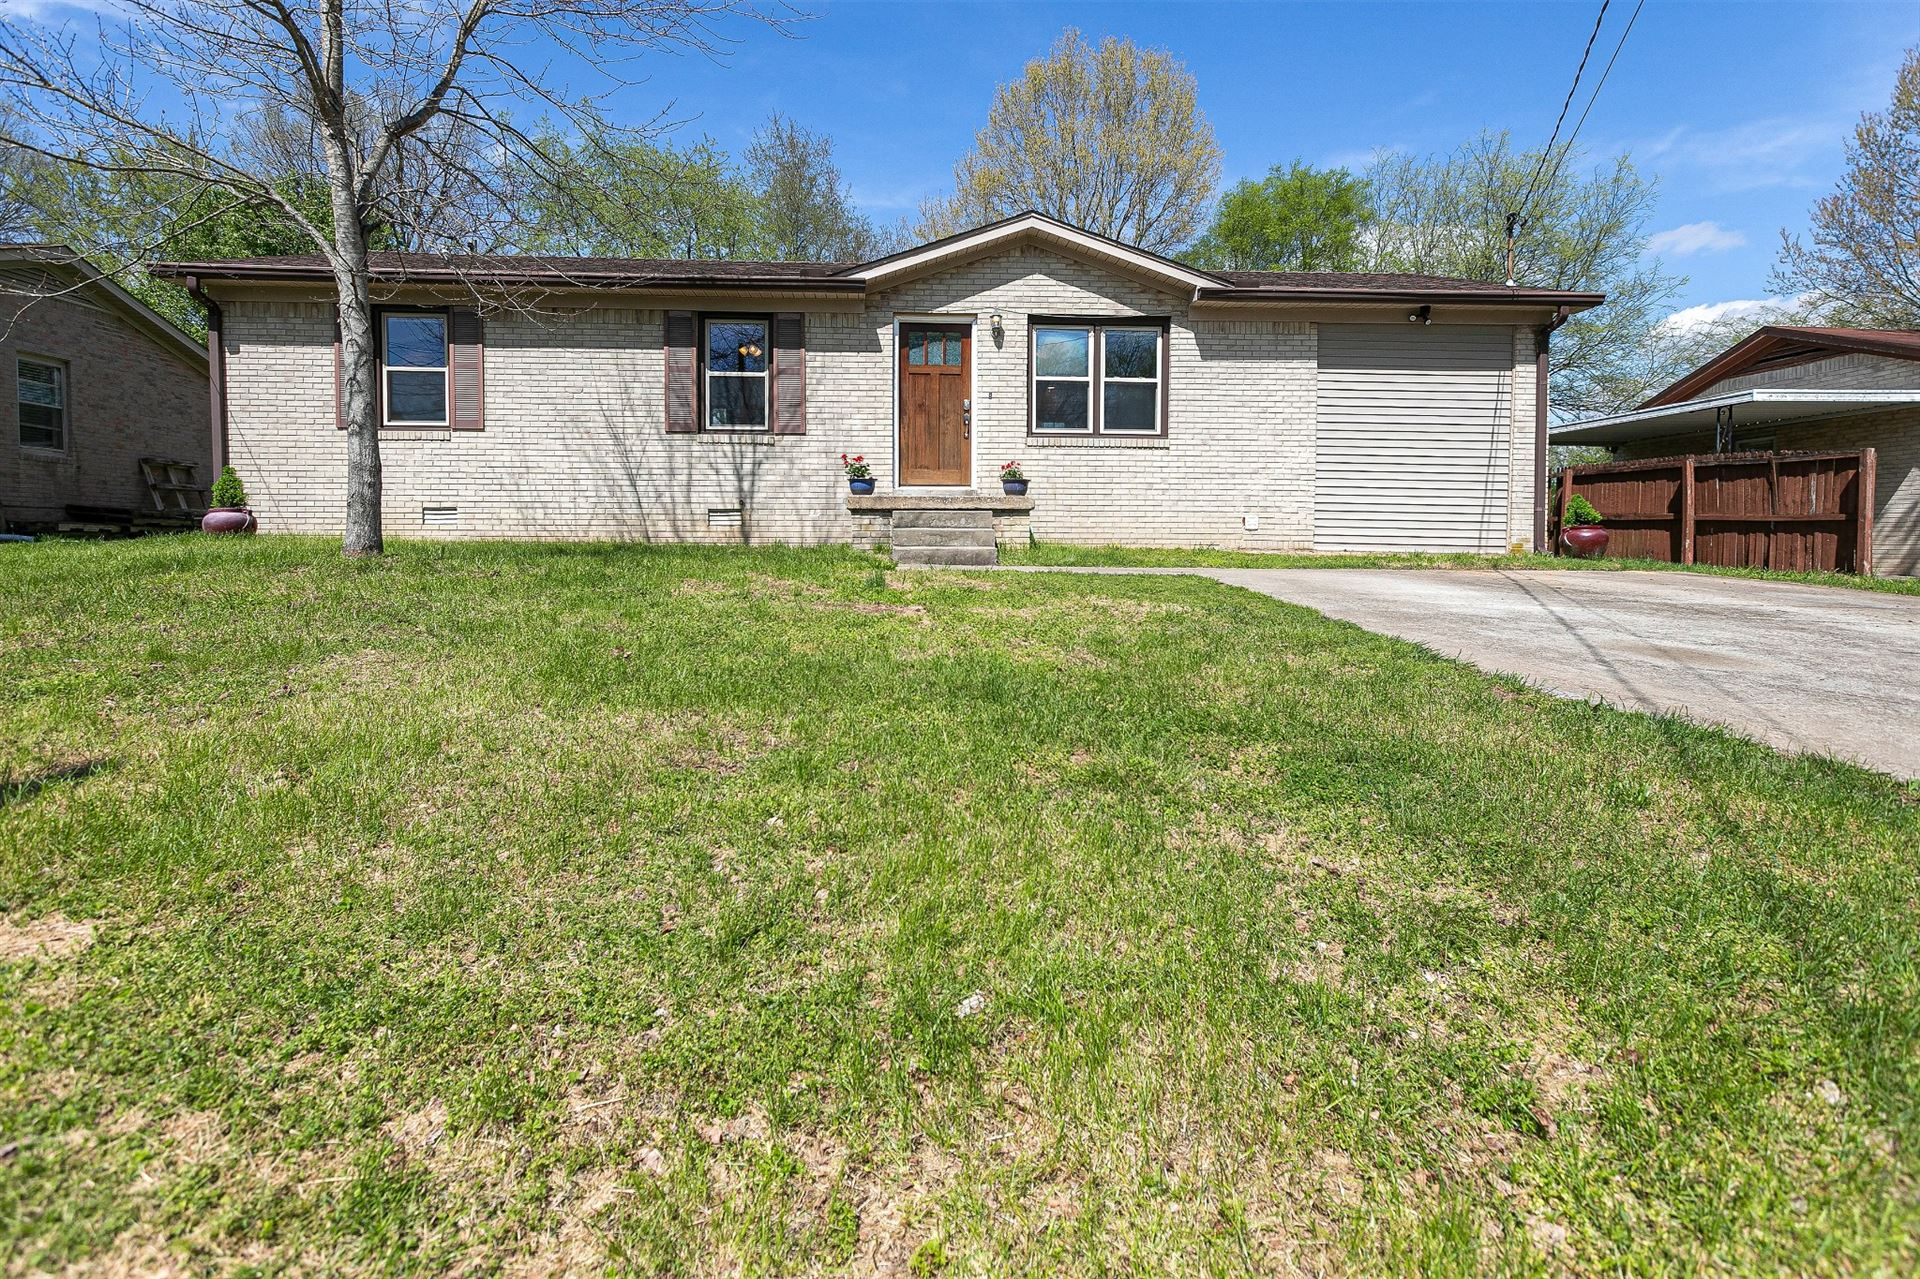 Photo of 617 McLemore Ave, Spring Hill, TN 37174 (MLS # 2137919)